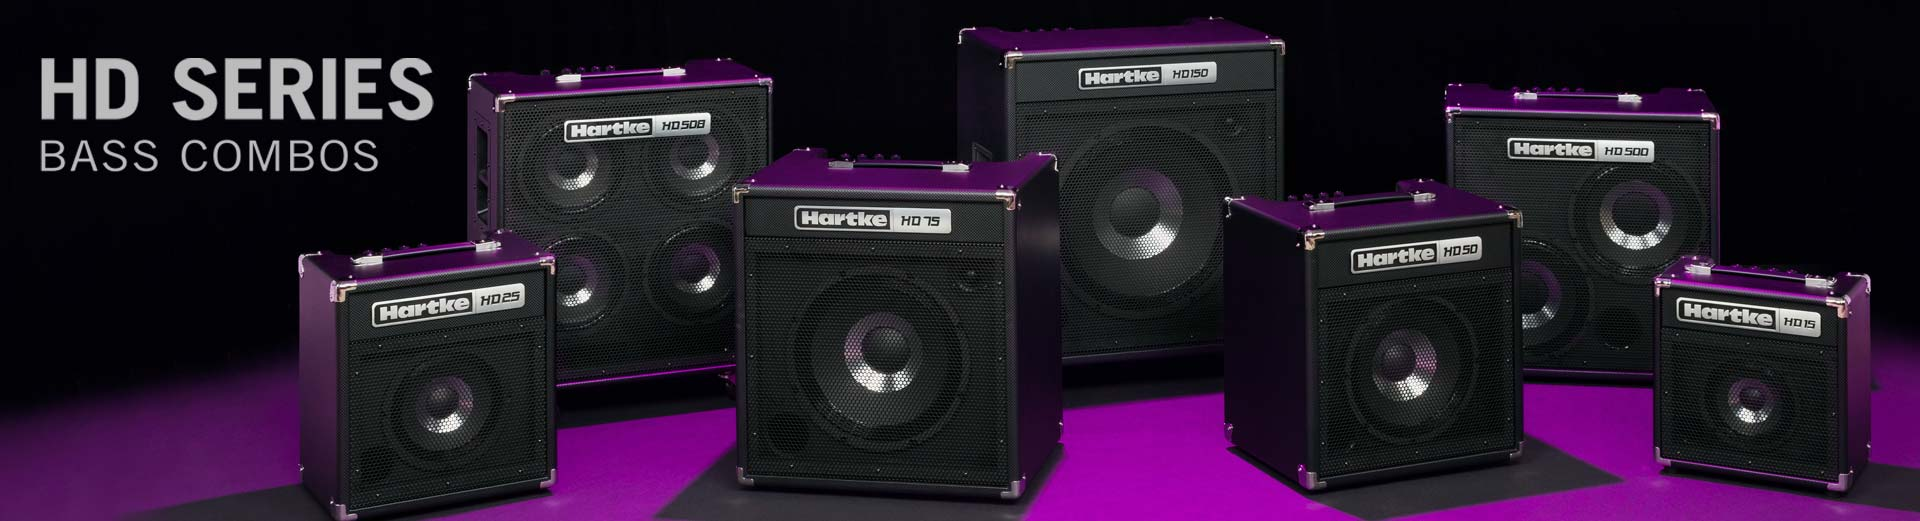 Hartke HD Bass Combos